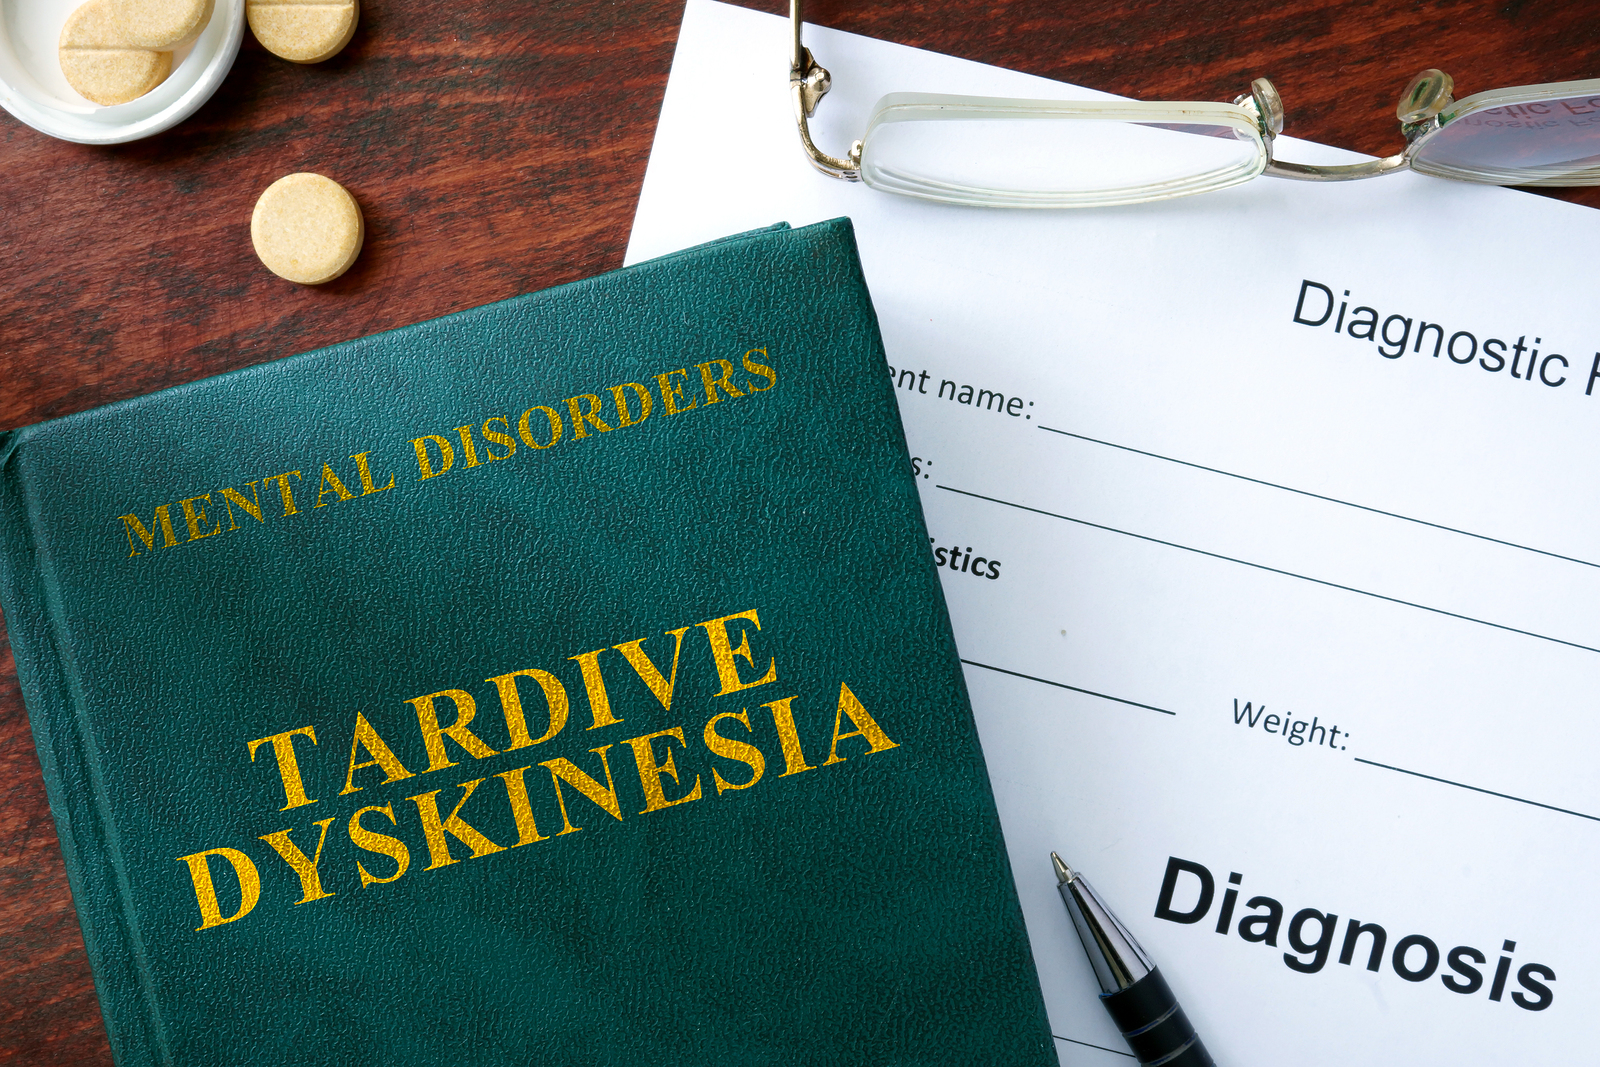 Tardive Dyskinesia and Marijuana Information: Treat Tardive's With